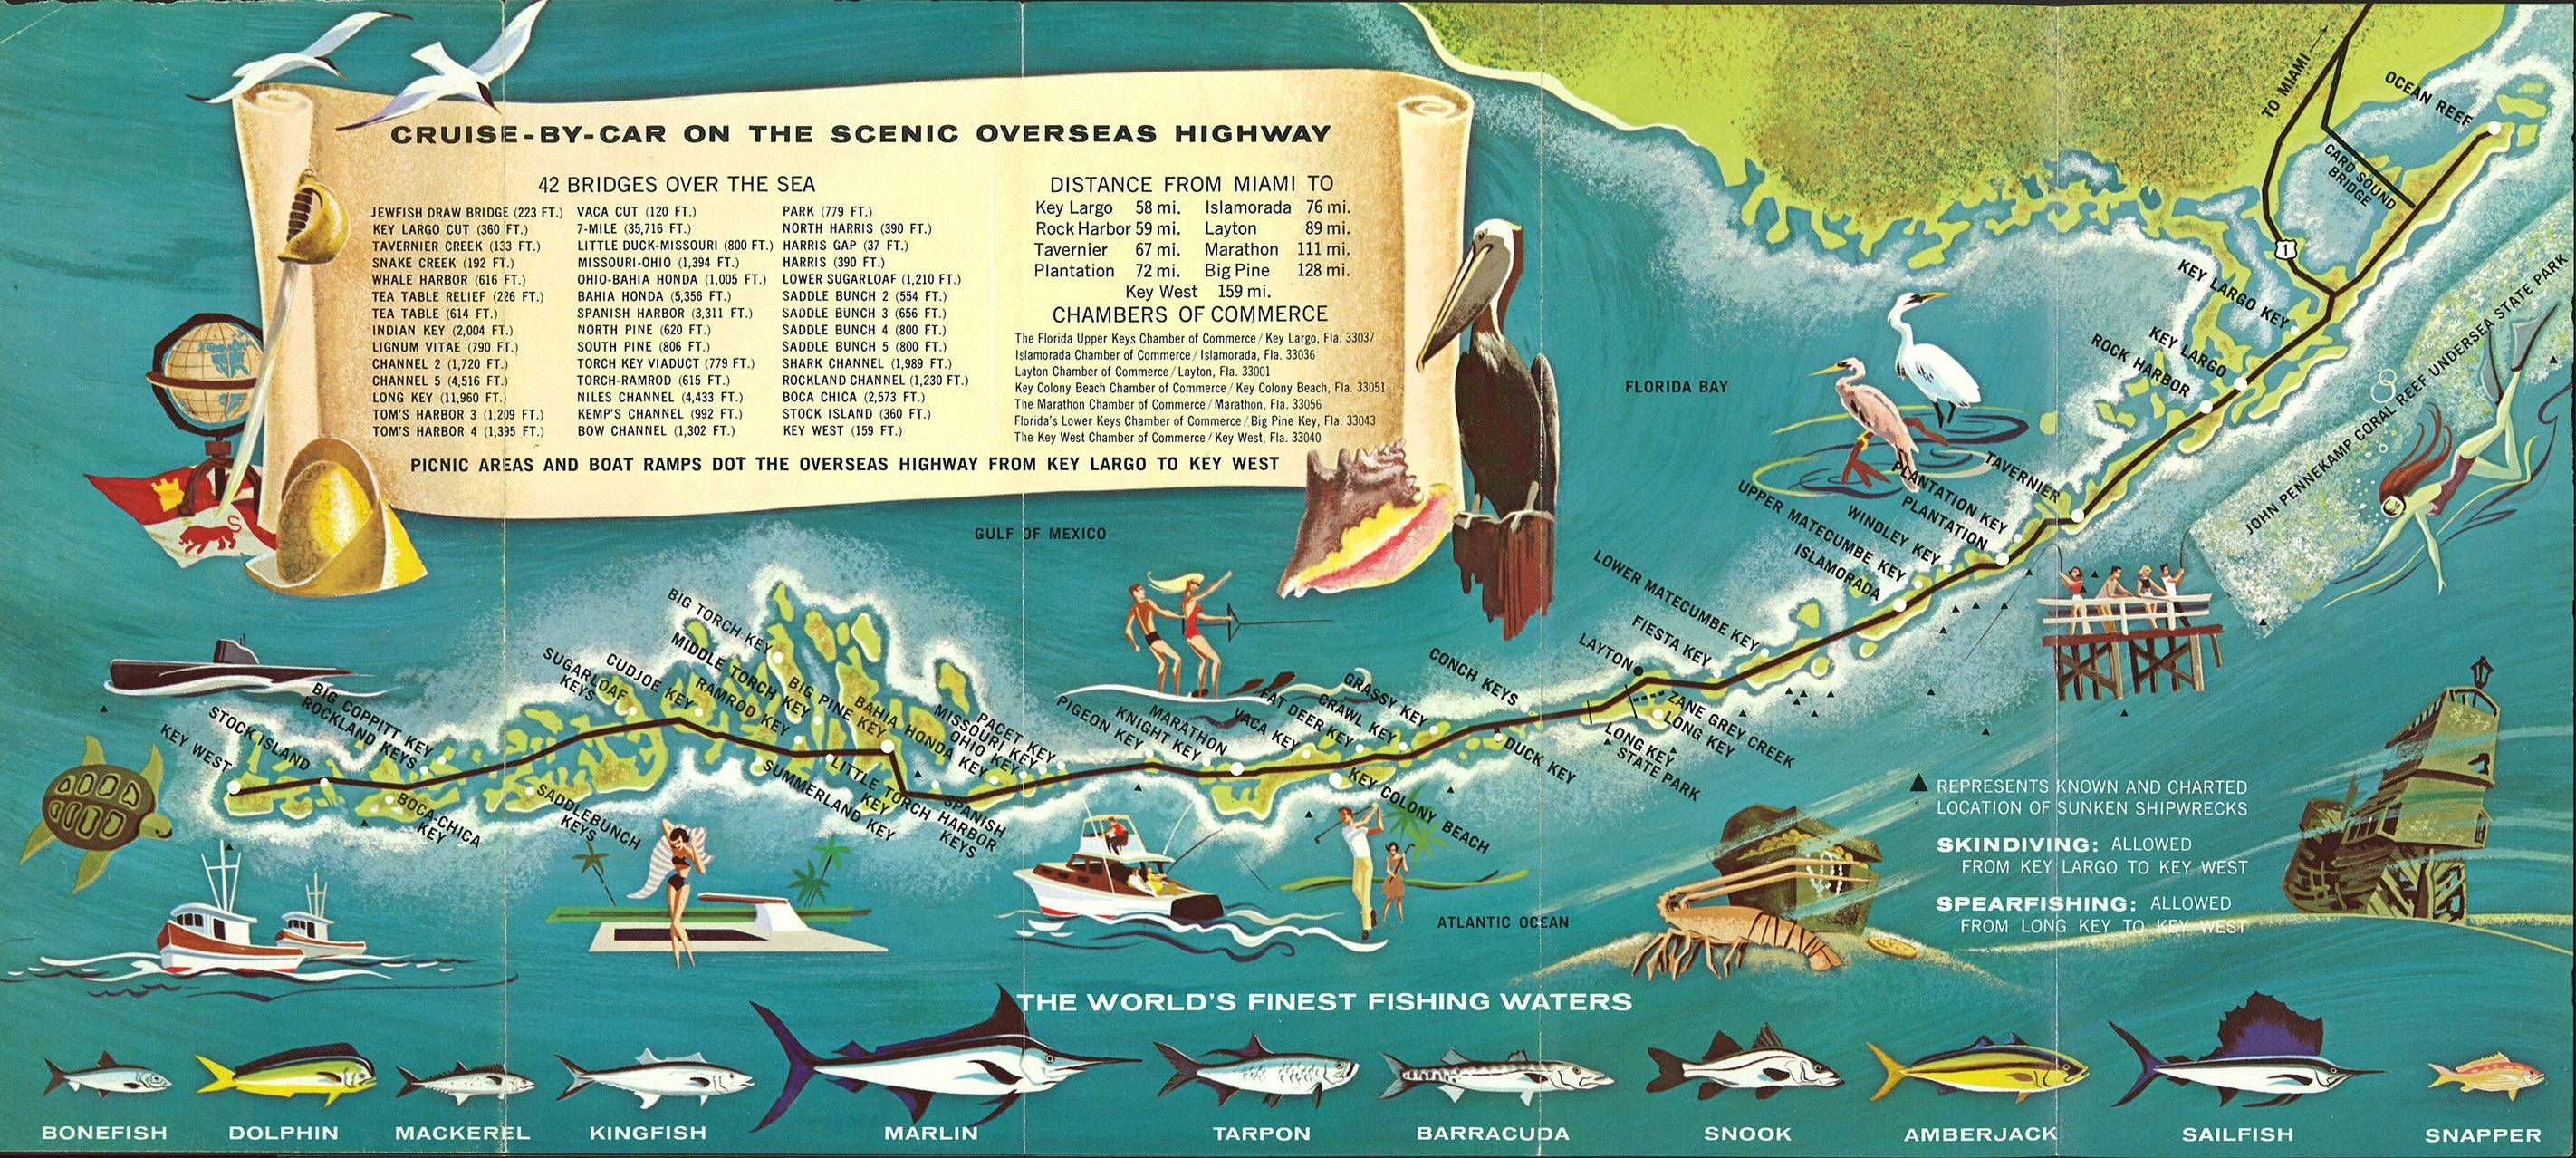 Retro Style 1960s Tourist Map Of The Florida Keys 2844 1278 In